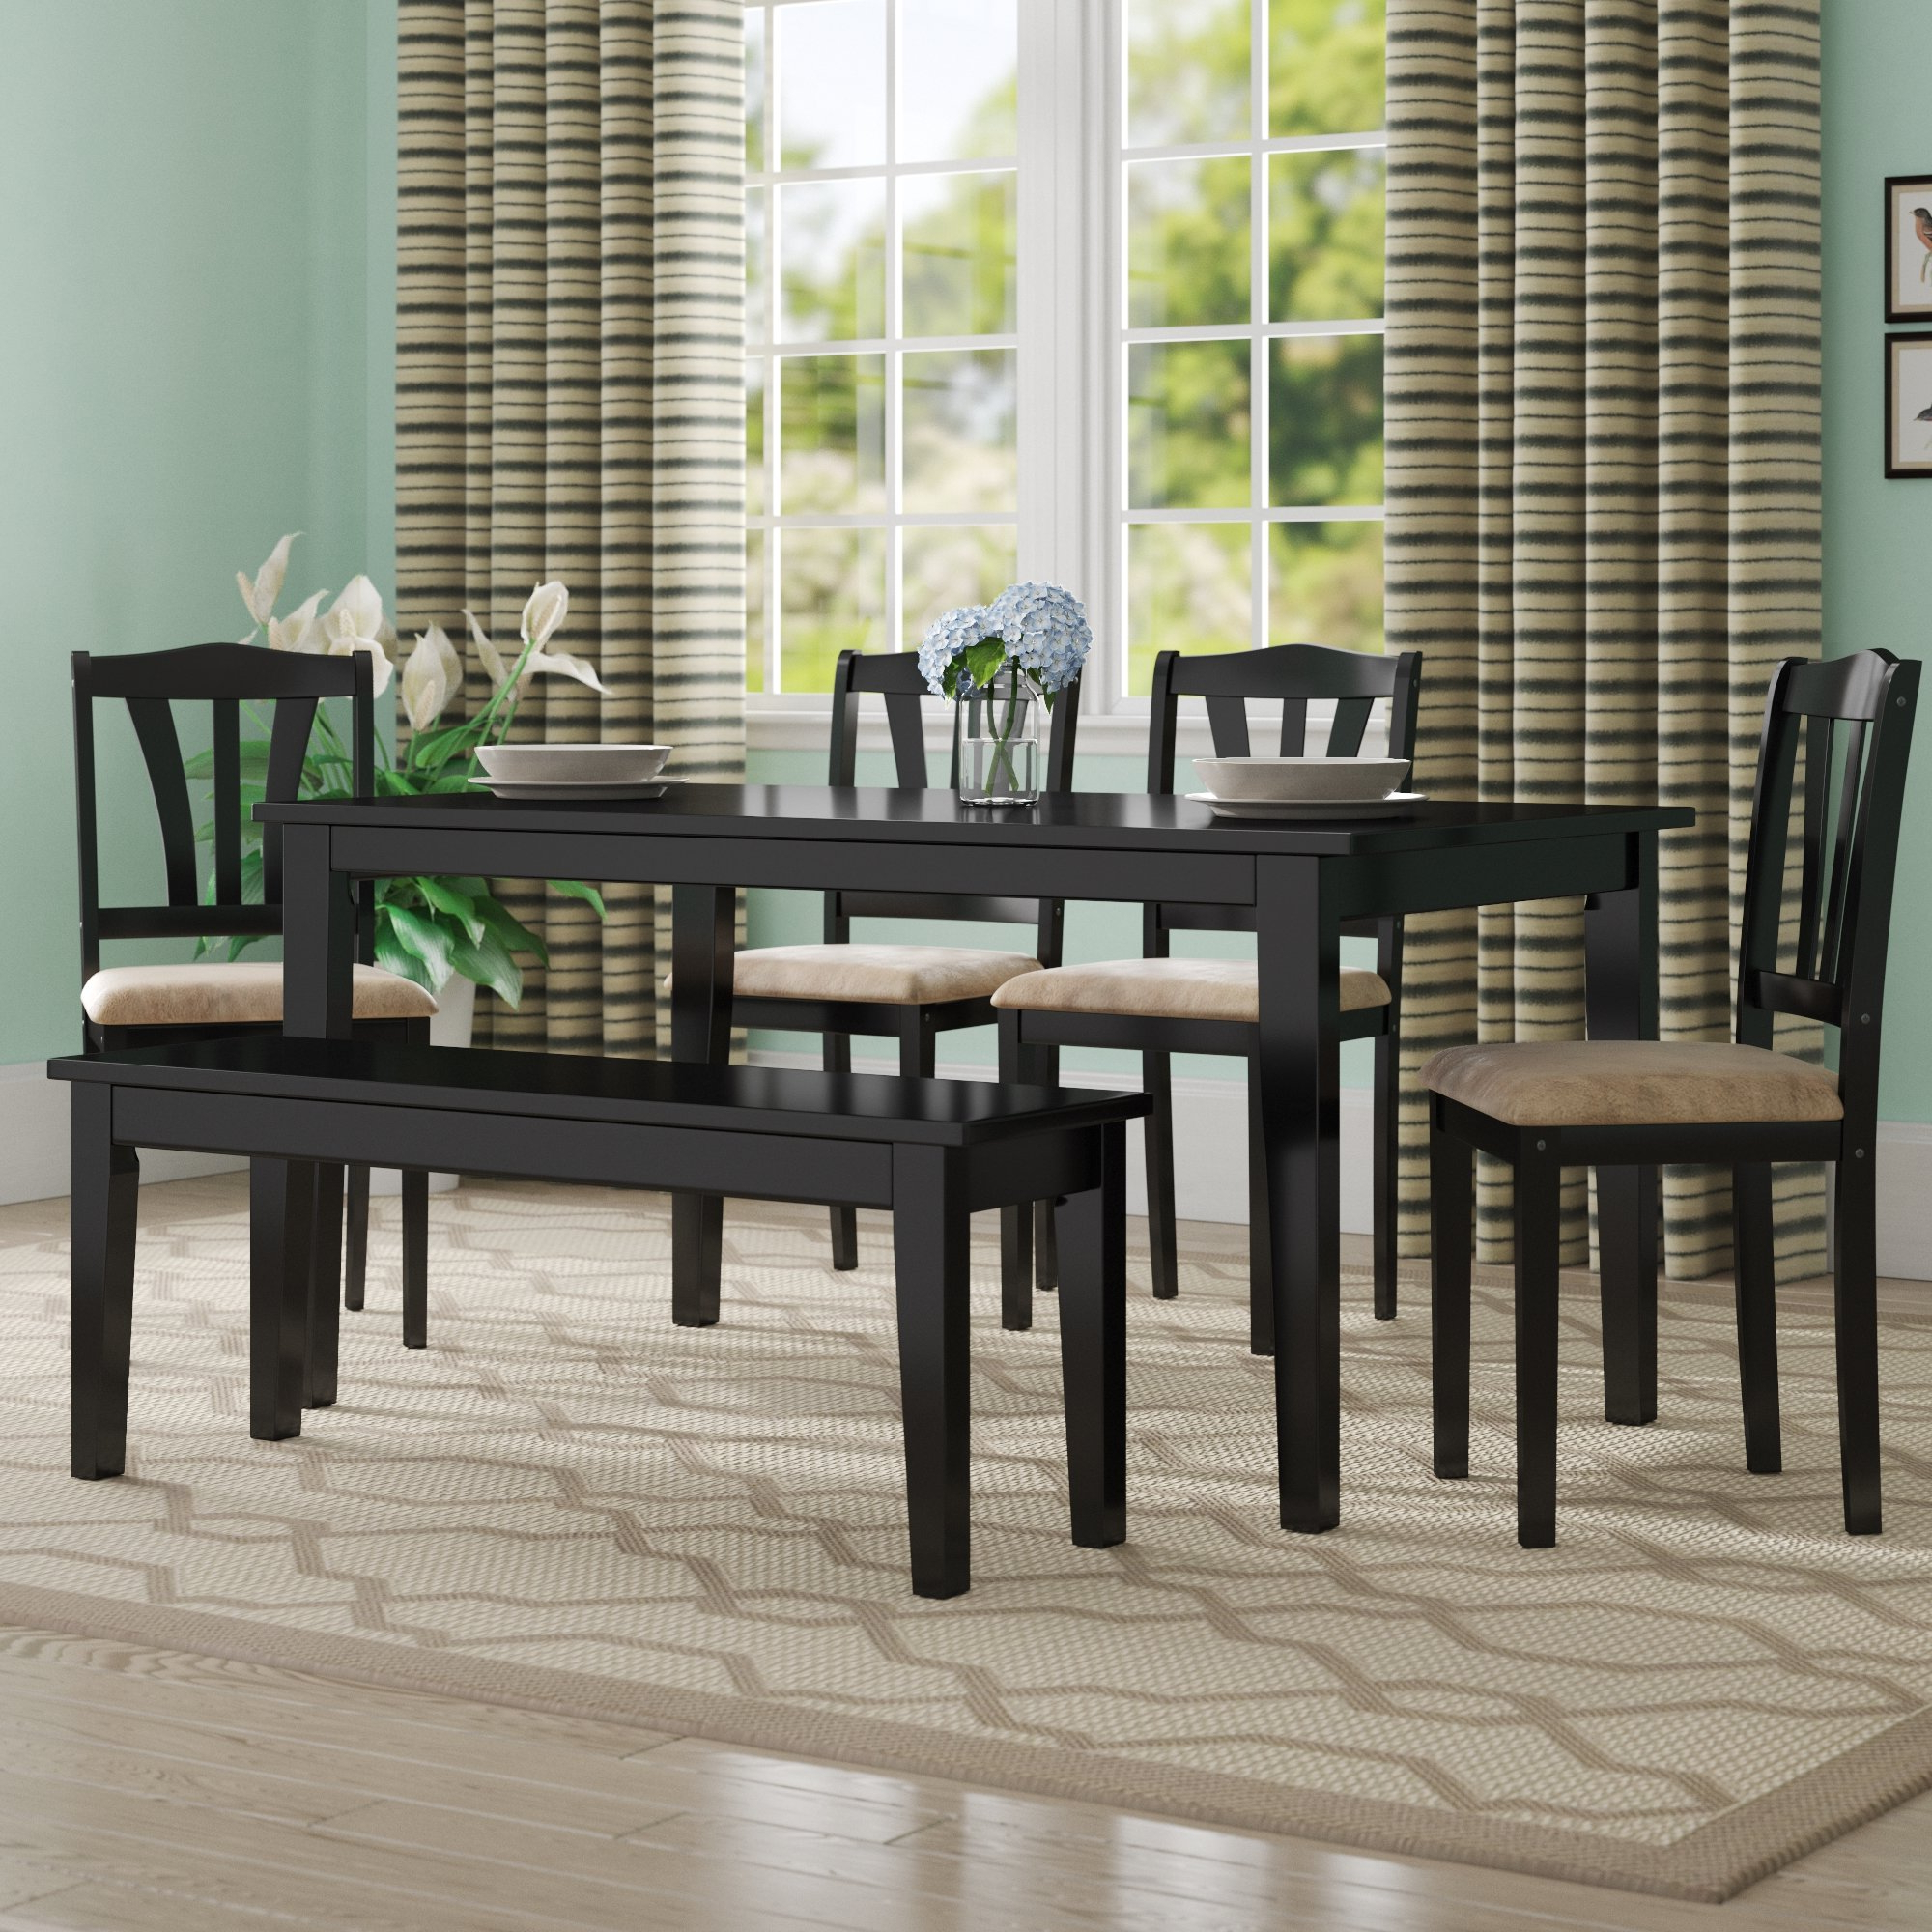 Wayfair Intended For Fashionable Partin 3 Piece Dining Sets (View 20 of 25)